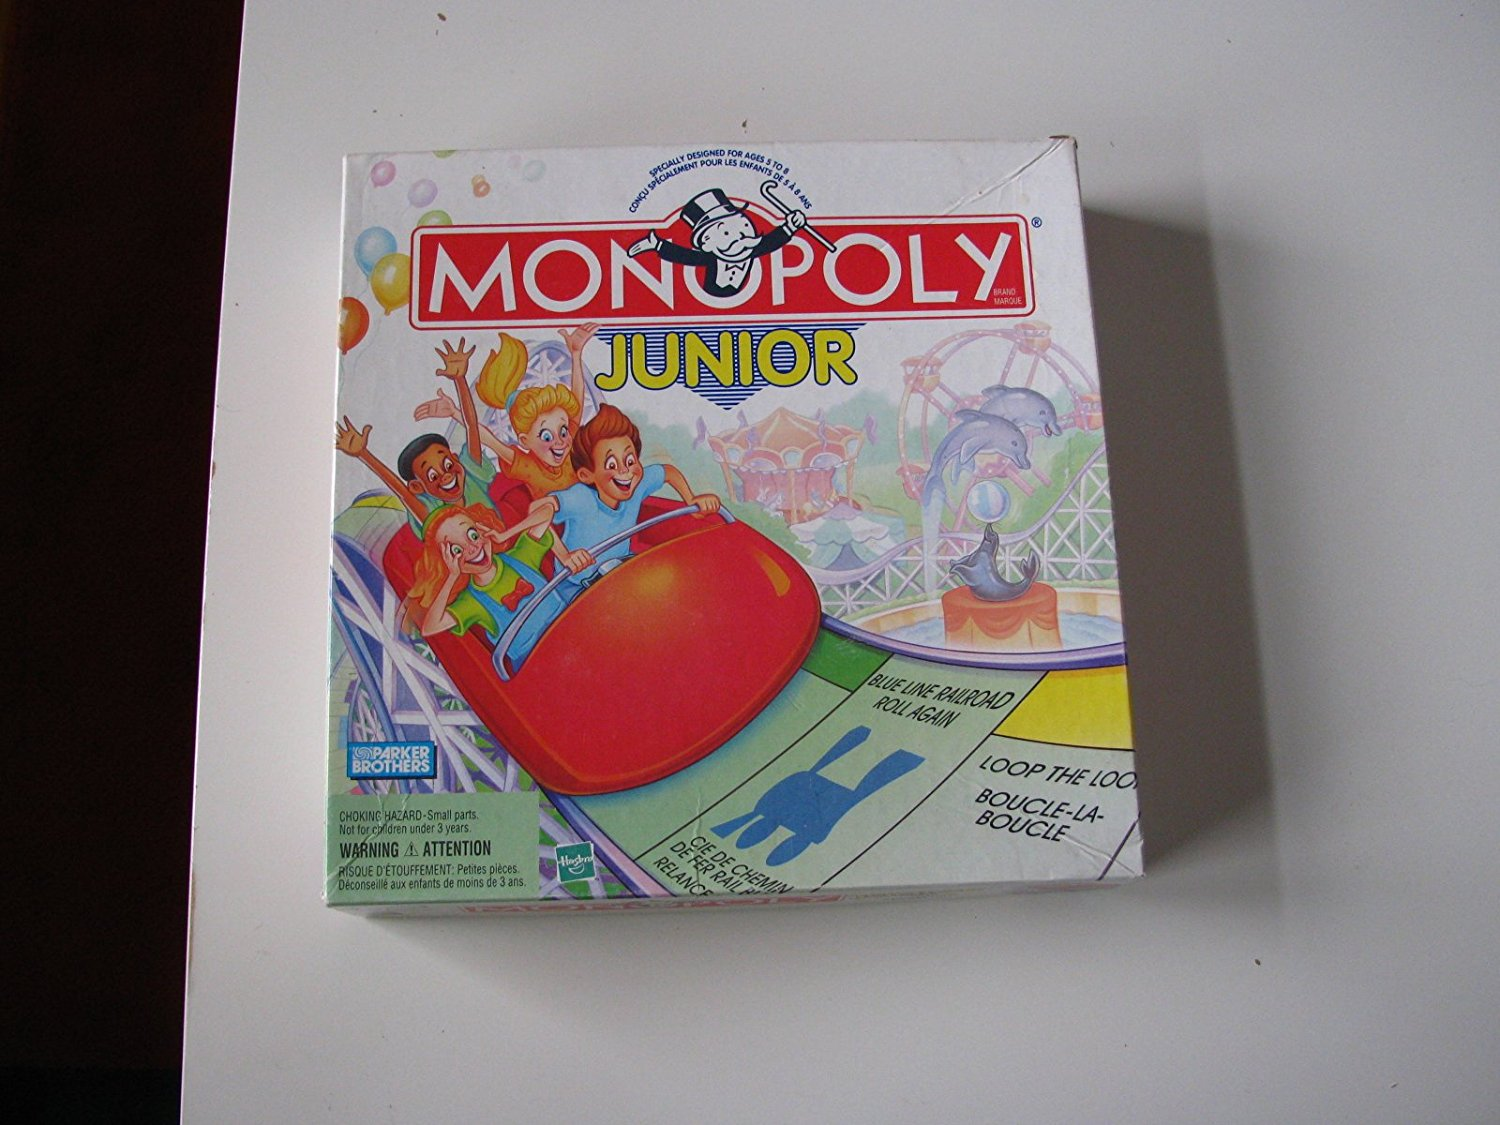 Parker Brothers Monopoly Junior Board Game 1999 Version, By Hasbro by